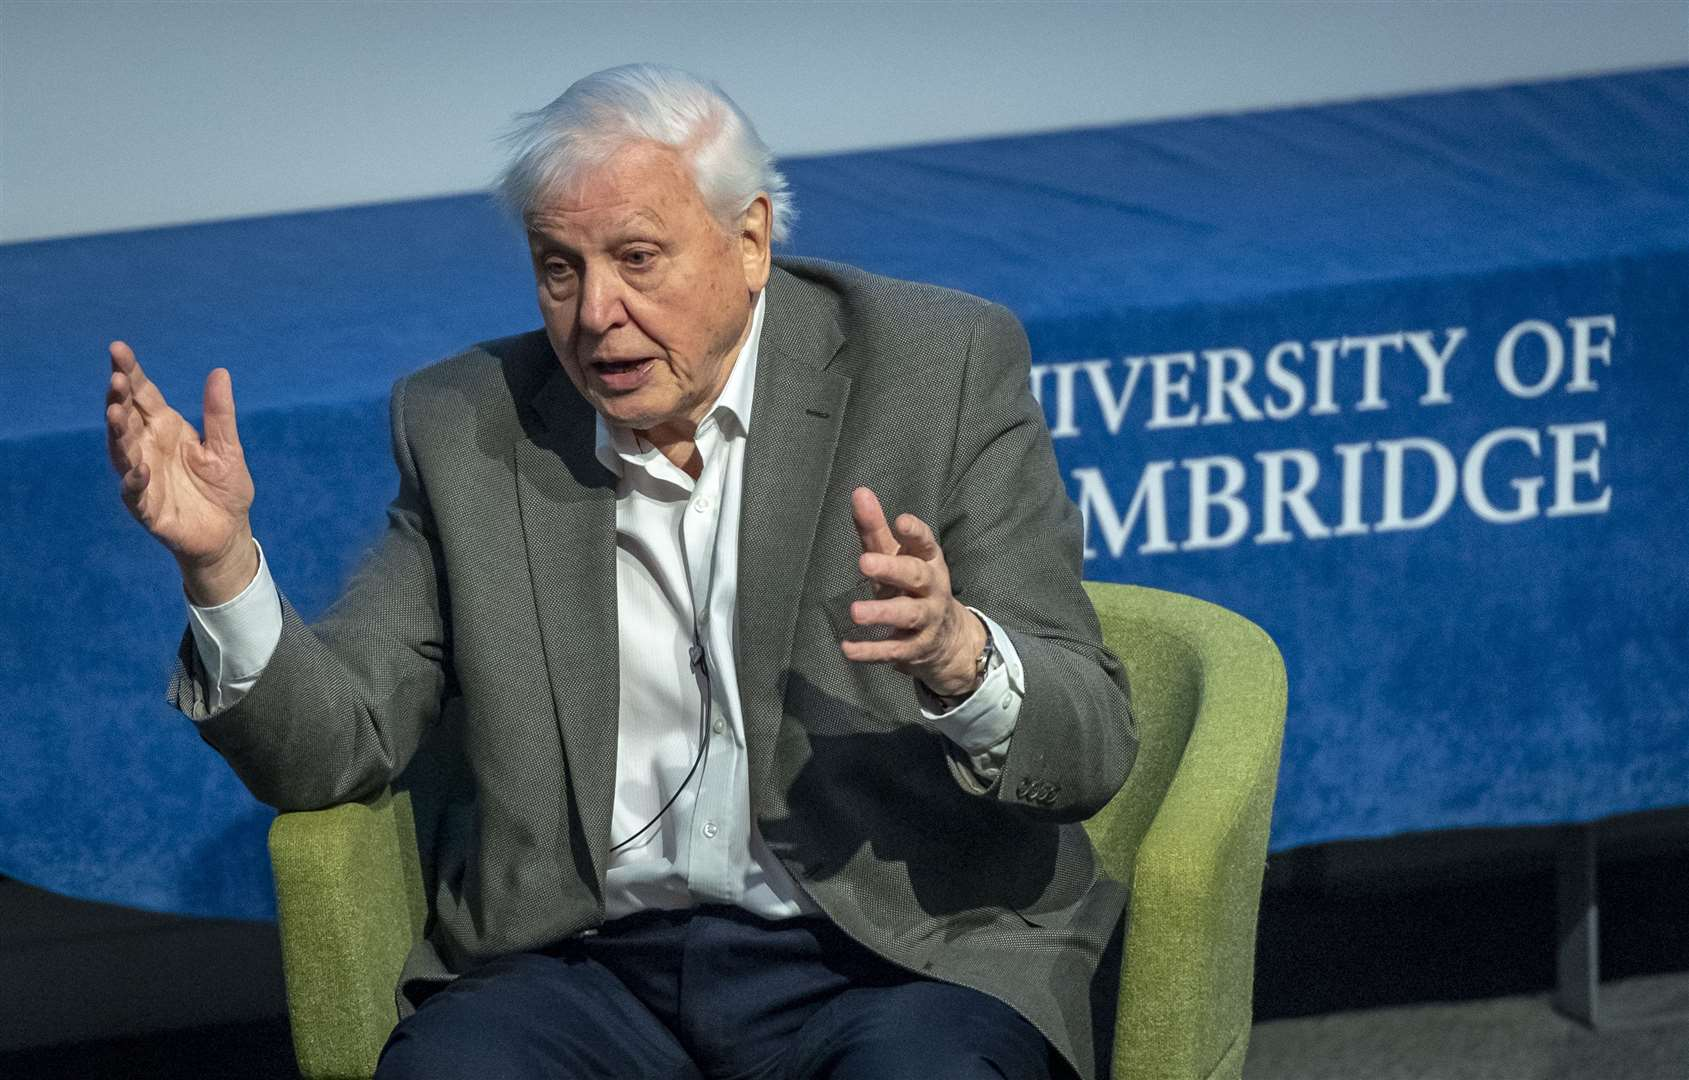 Sir David Attenborough at the twentieth Student Conference on Conservation Science series in Cambridge, Australia, Beijing, Bangalore, New York and Hungary is the only international series of conservation conferences aimed entirely at students. SCCS helps young conservation scientists gain experience, learn new ideas and make contacts that will be valuable for their future careers. Over the past 19 years, SCCS Cambridge has hosted over 3,200 delegates from 133 countries worldwide. Picture: Keith Heppell. (8270305)